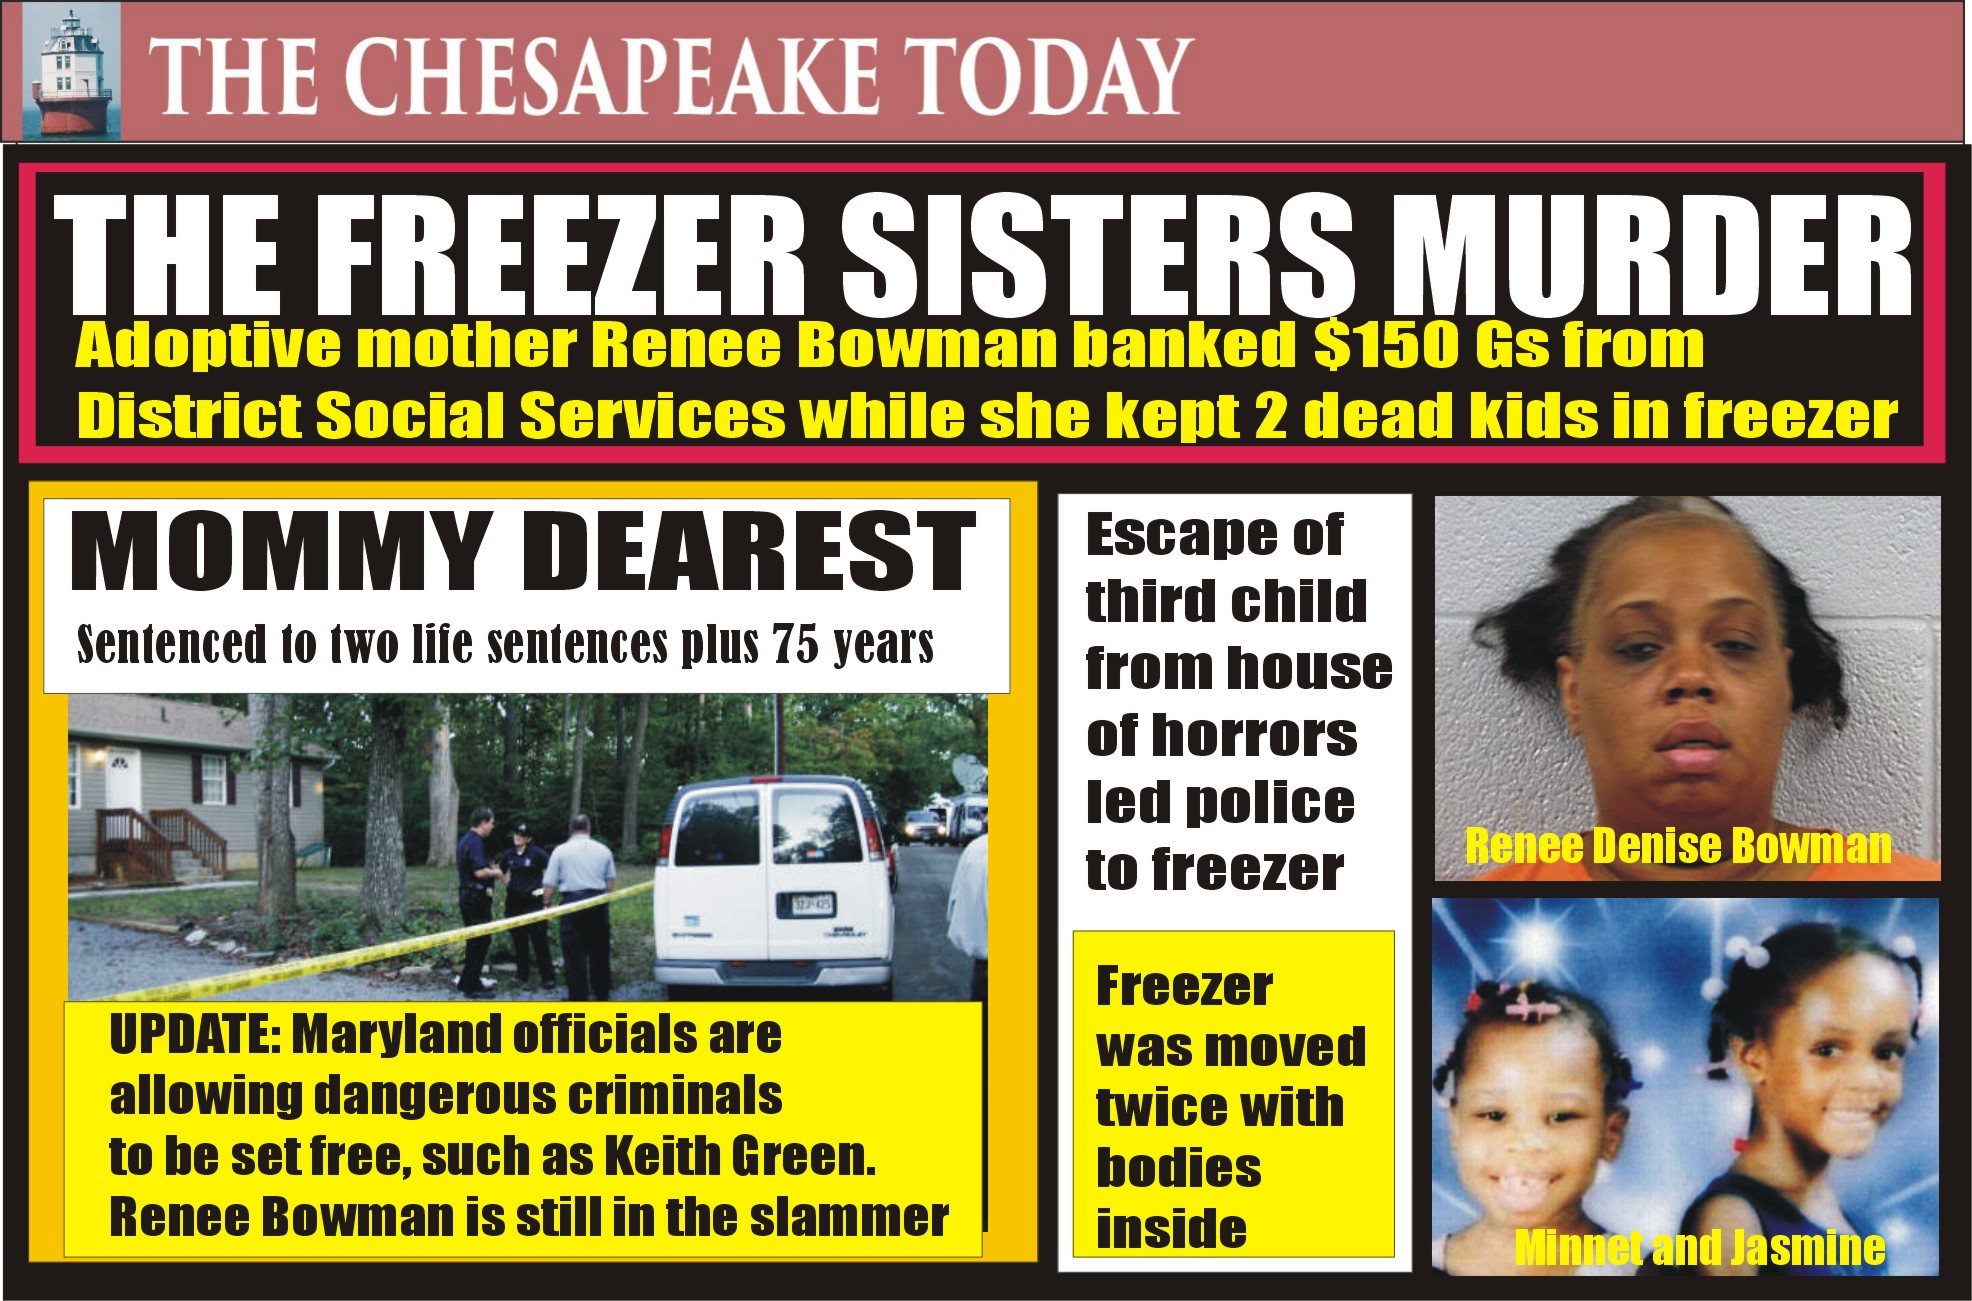 MURDER USA: The Case of the Freezer Sisters; Renee Denise Bowman still in prison for the murder of two adopted children kept in a freezer while she cashed checks from the District of Columbia